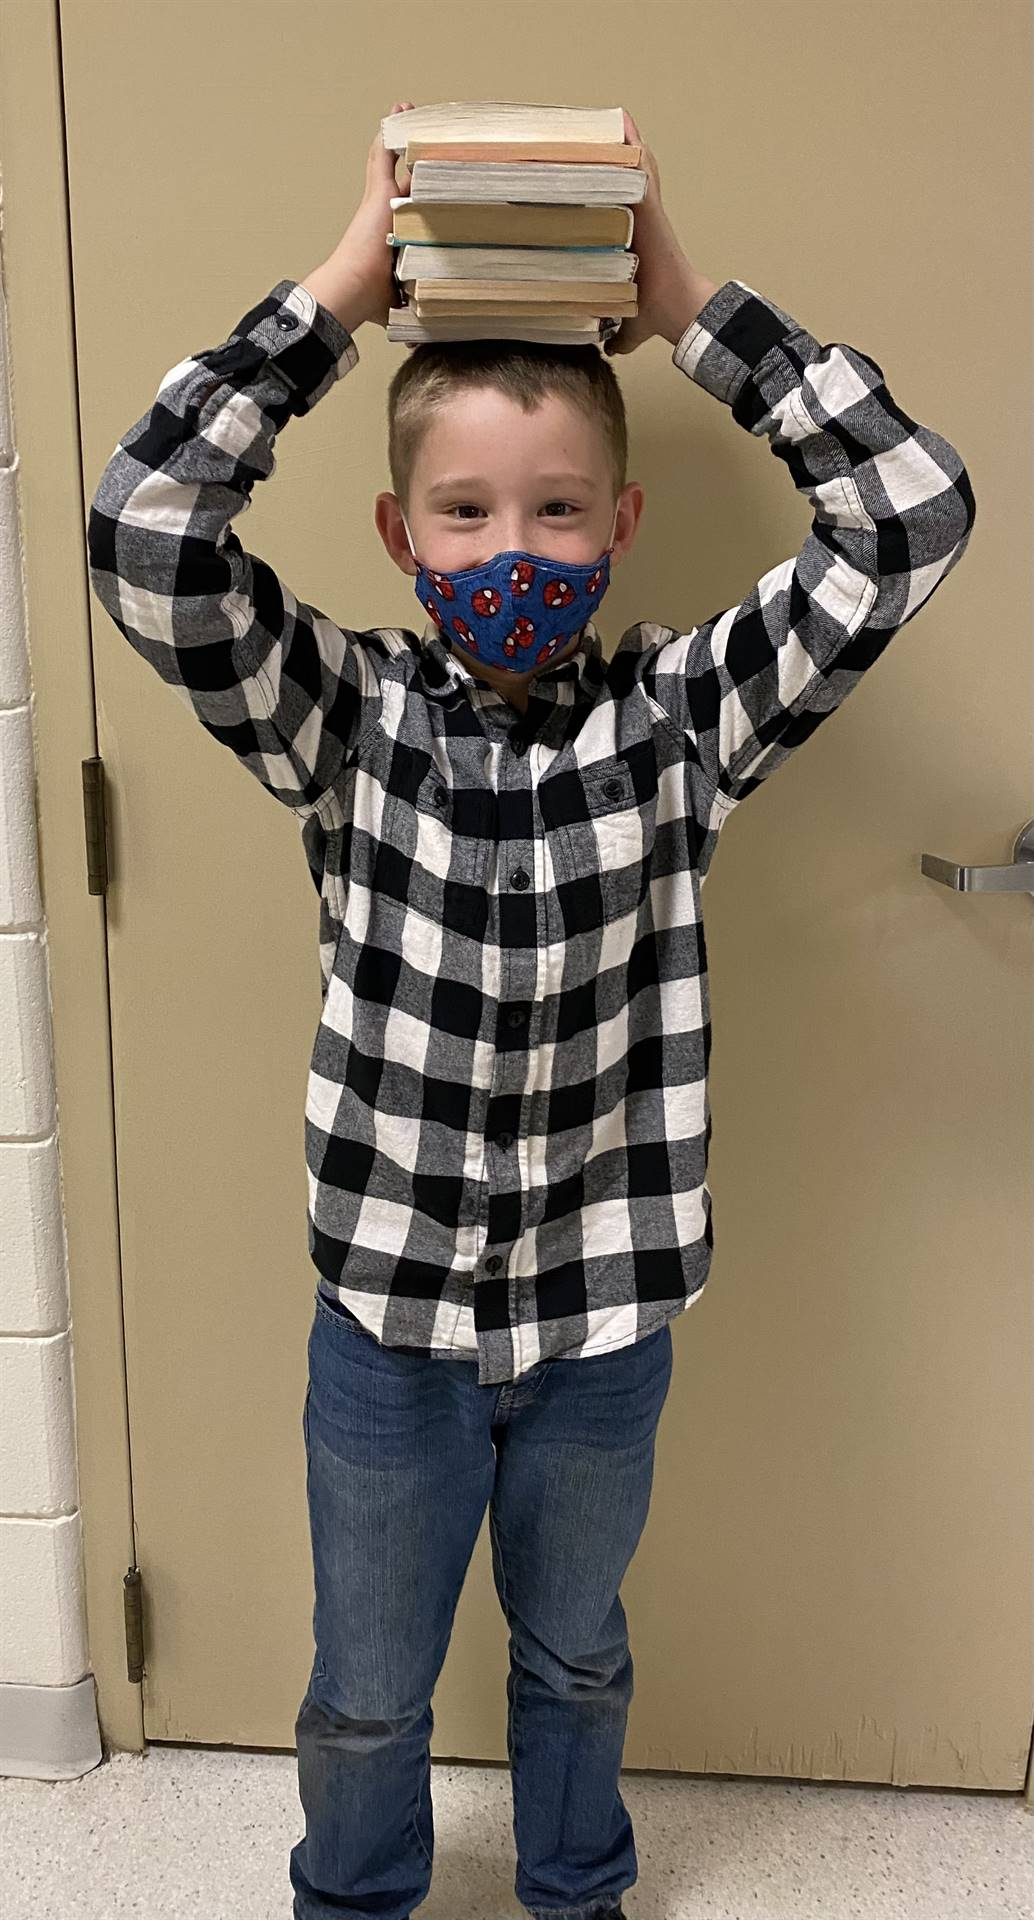 Tyler Boss, 3rd Grade 200 Accelerated Reader Points